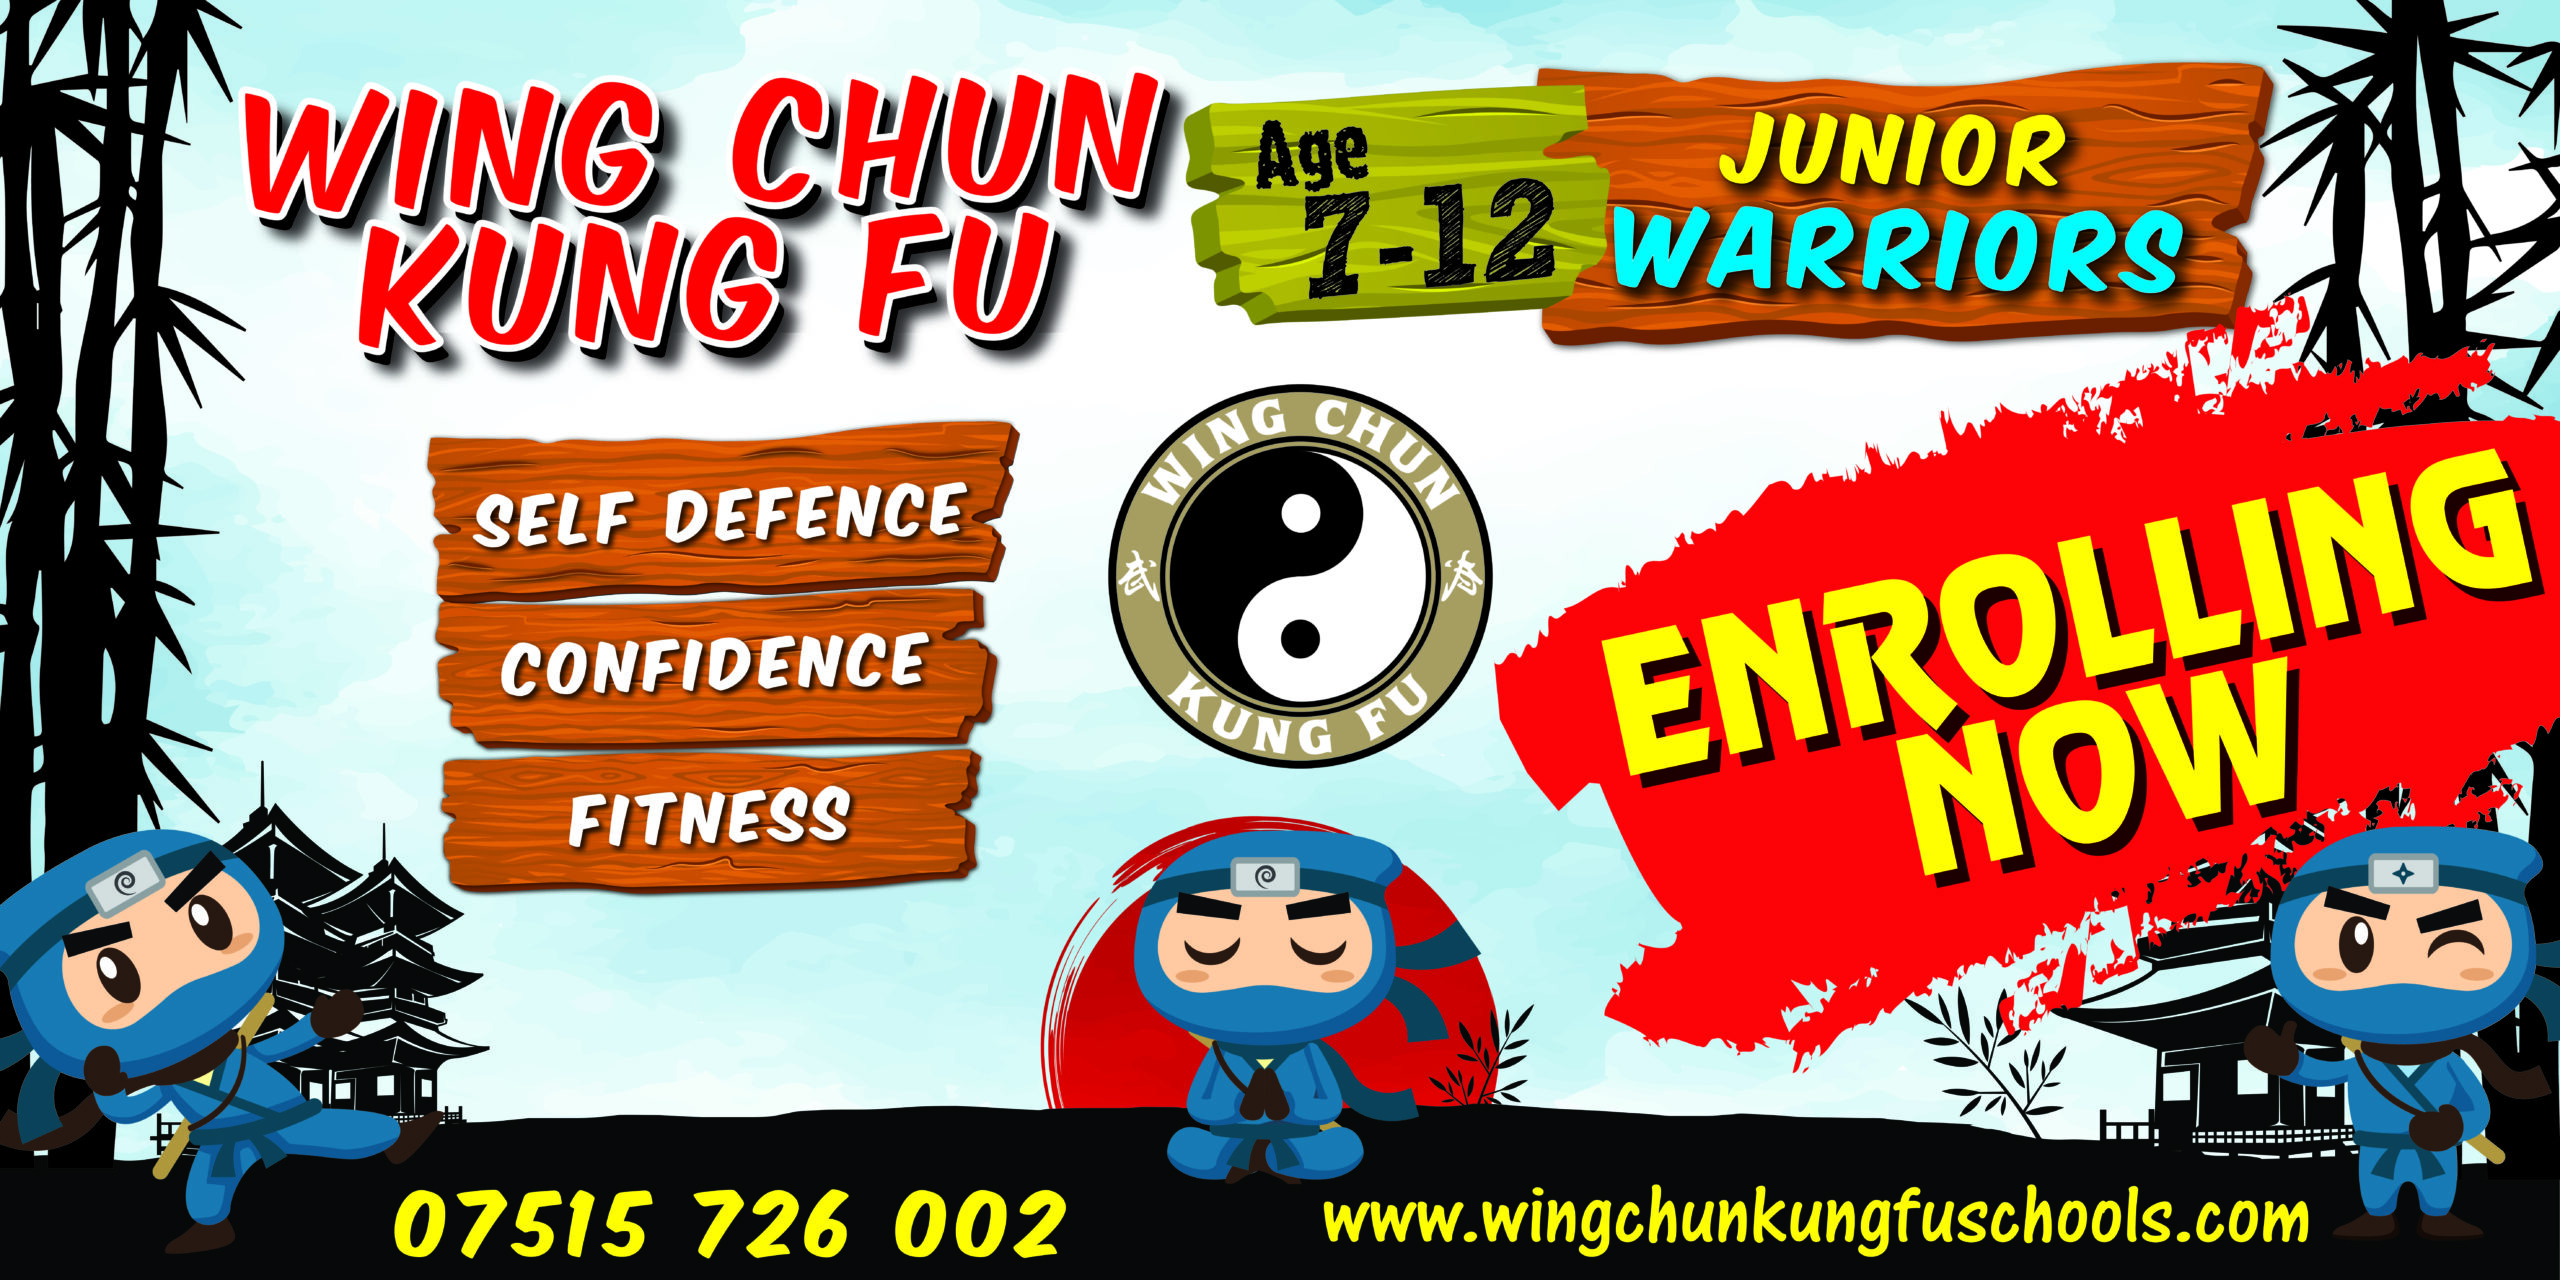 Junior Martial Arts classes aged 7 to 12